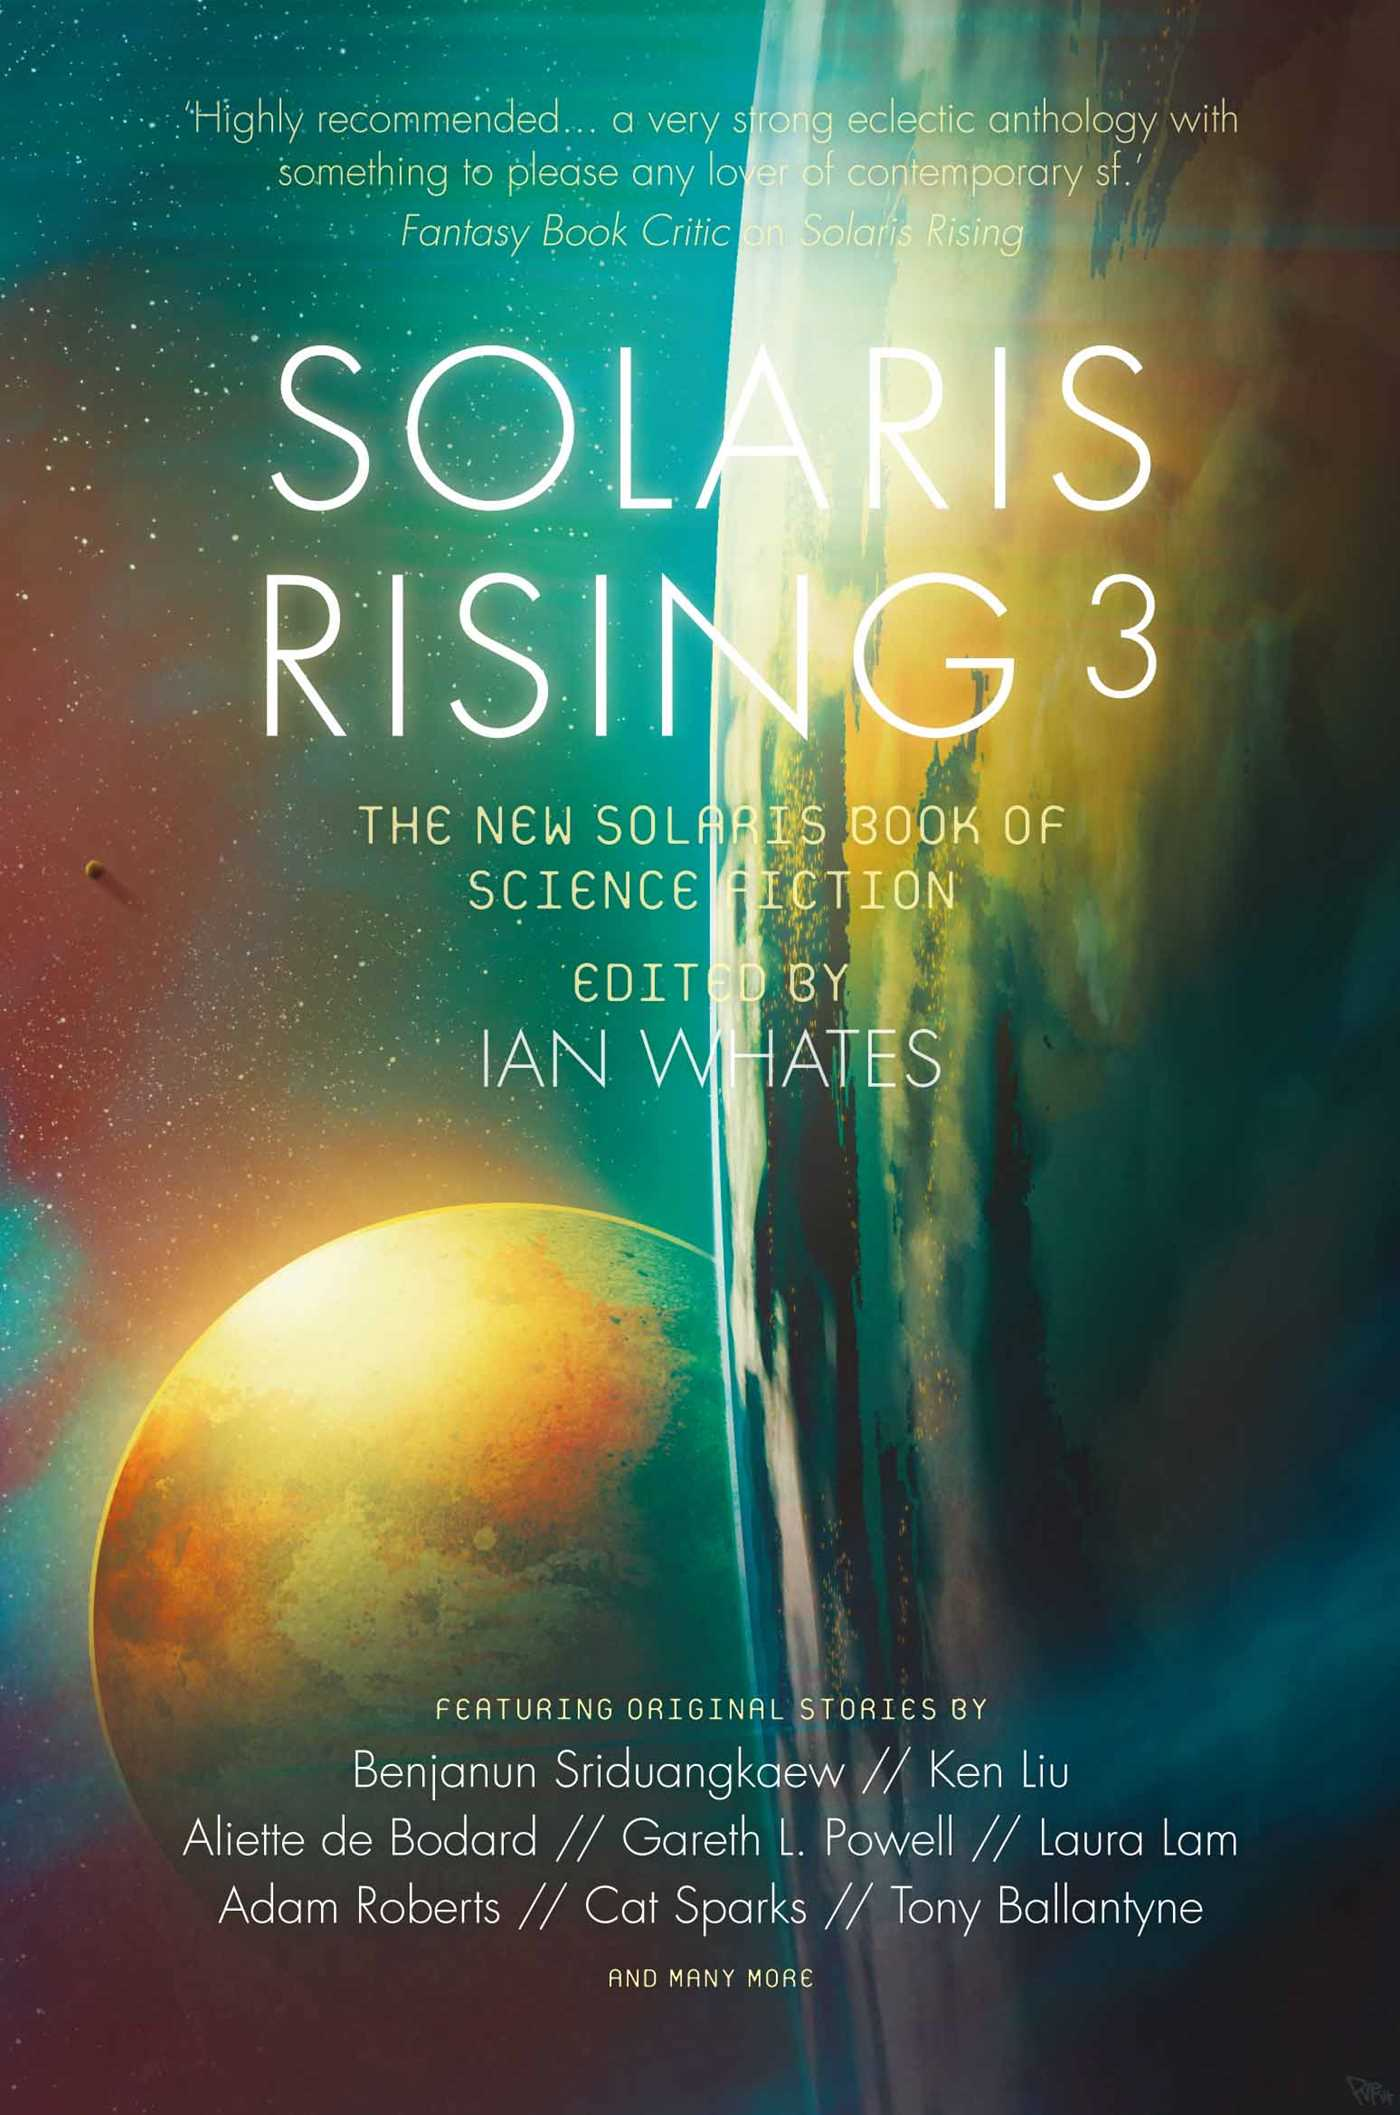 Solaris-rising-3-9781781082096_hr